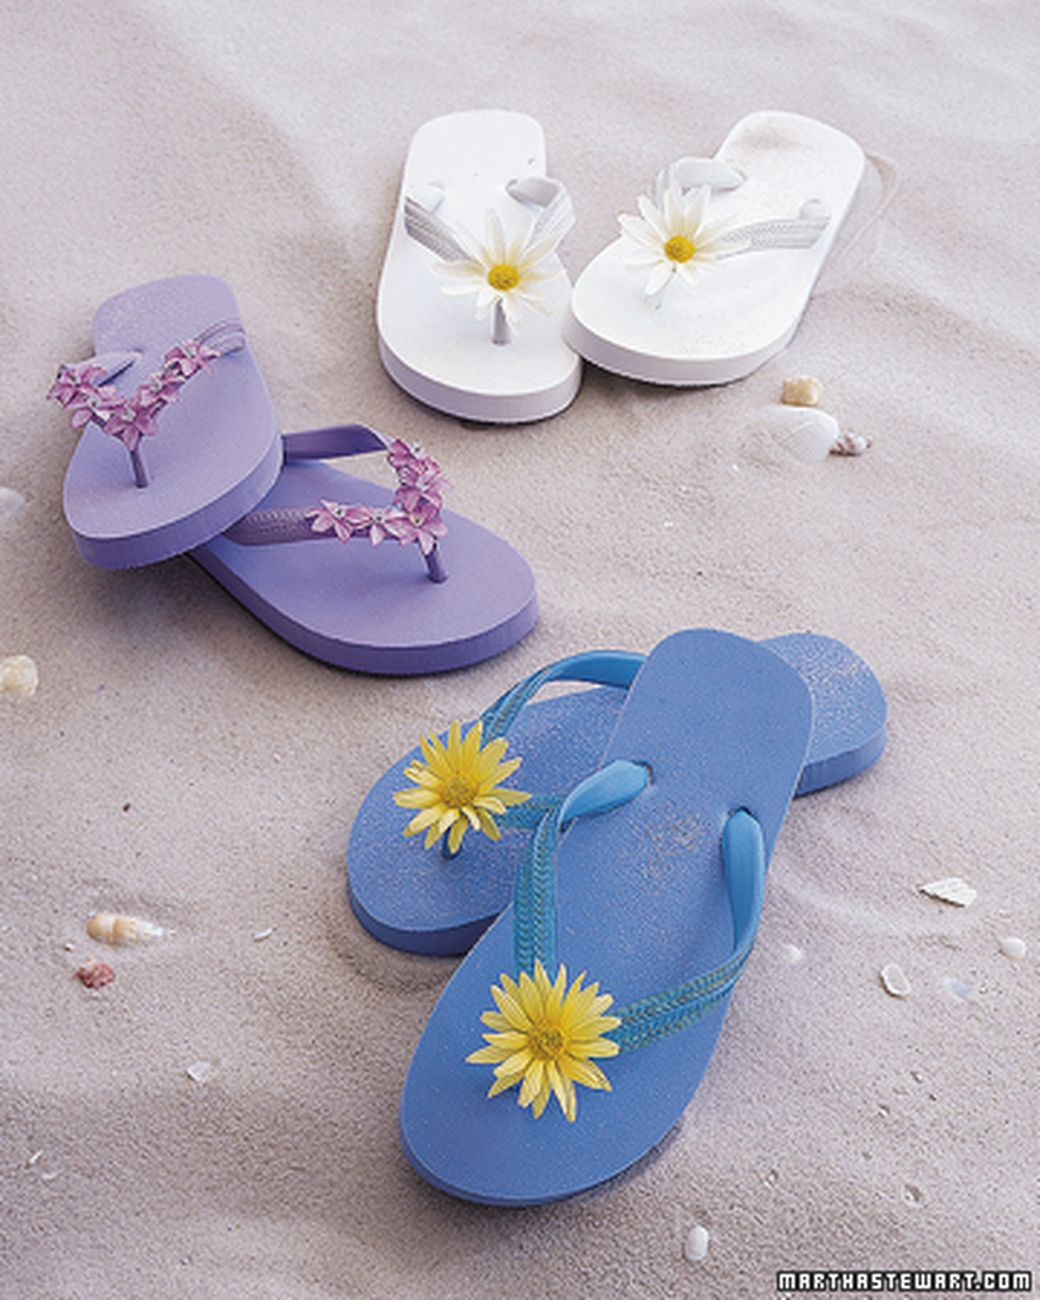 ef309565f17830 Flip-flops adorned with fabric flowers are the perfect accessory for  bright-colored shorts and bathing suits.